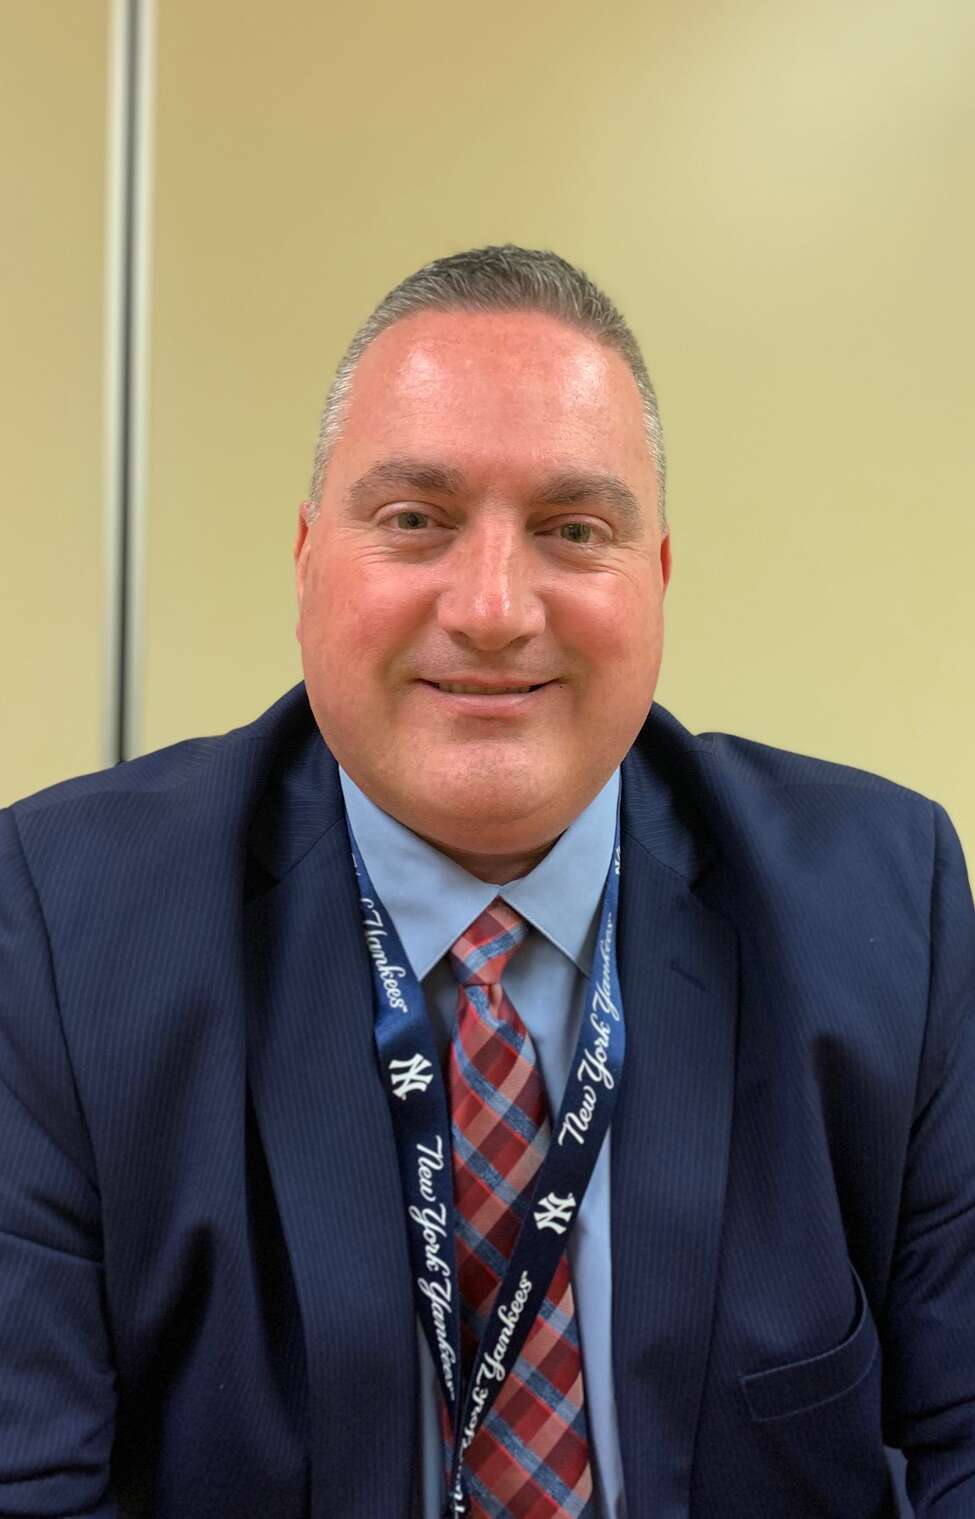 Dr. David Perry, a longtime teacher and administrator at South Colonie schools, has been selected to lead the district.